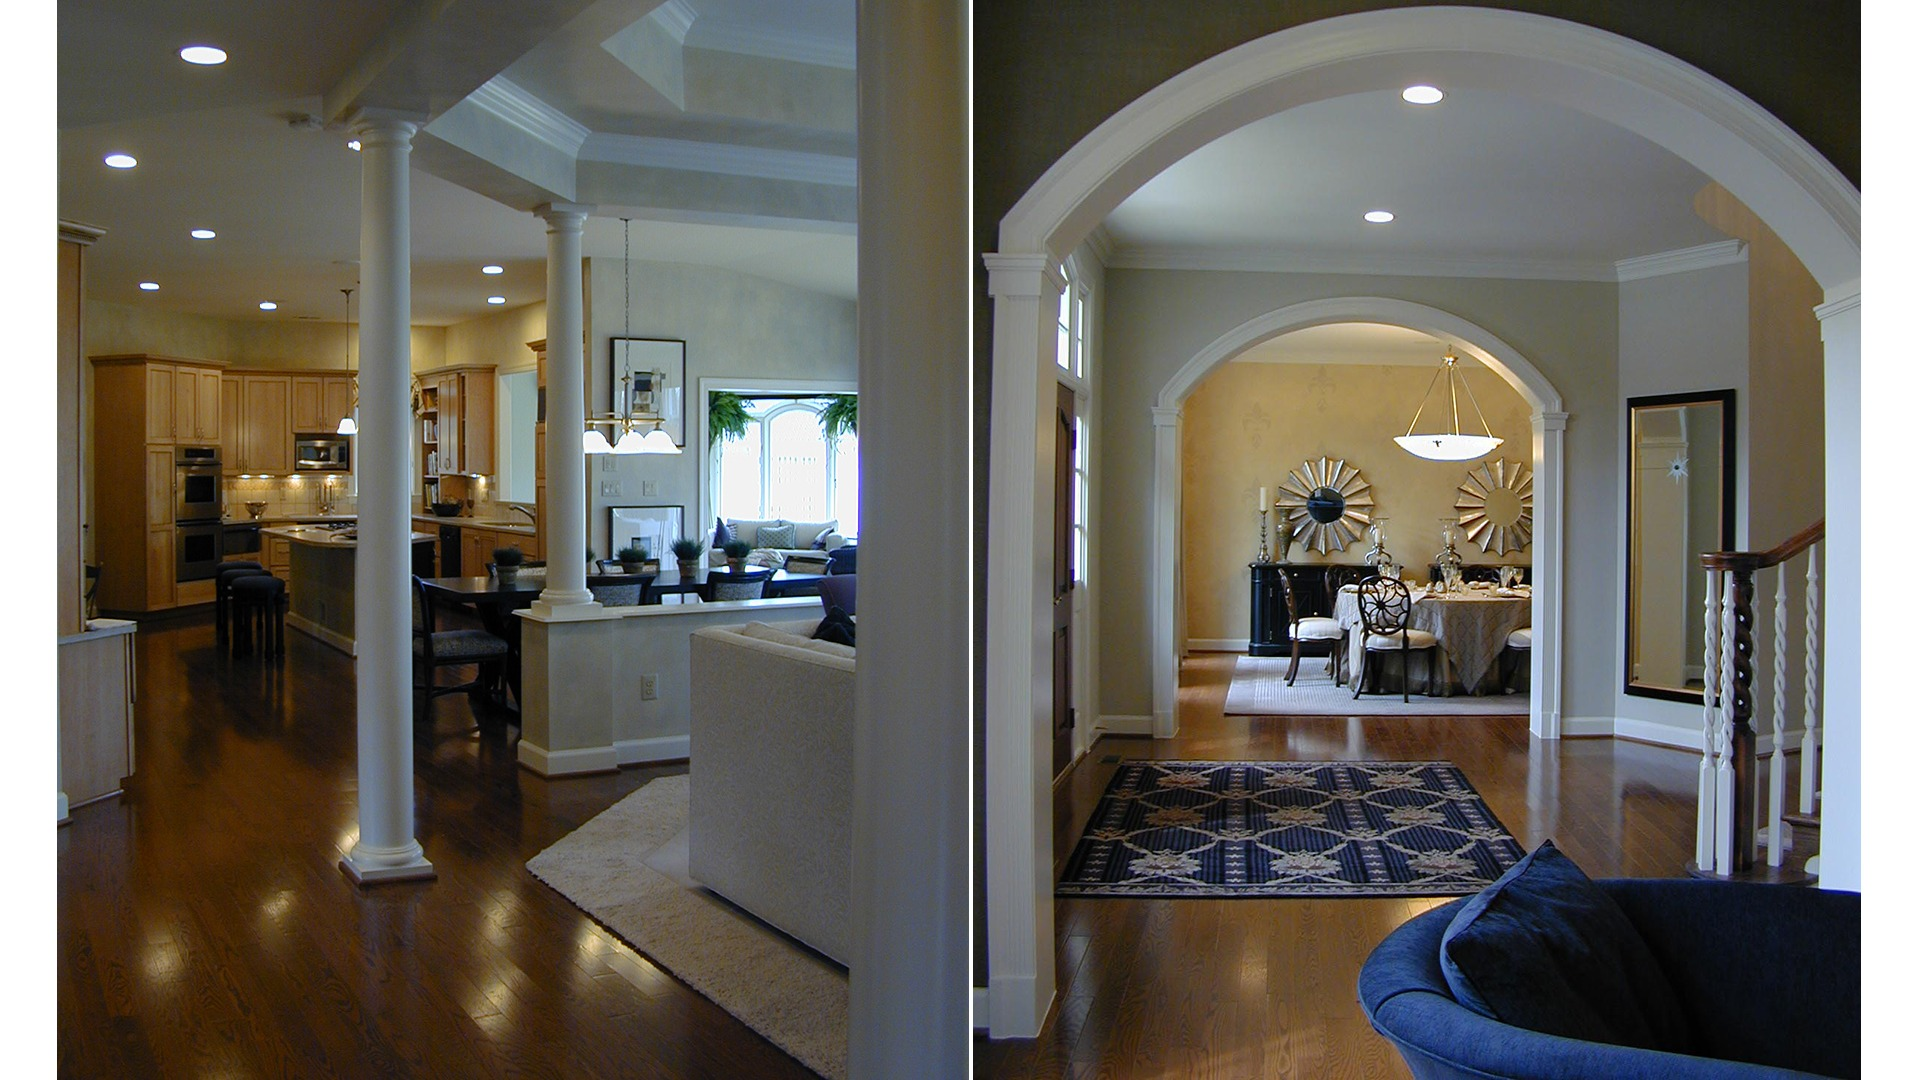 The Kitchen and Foyer in the Woodley model. Some optional features shown.